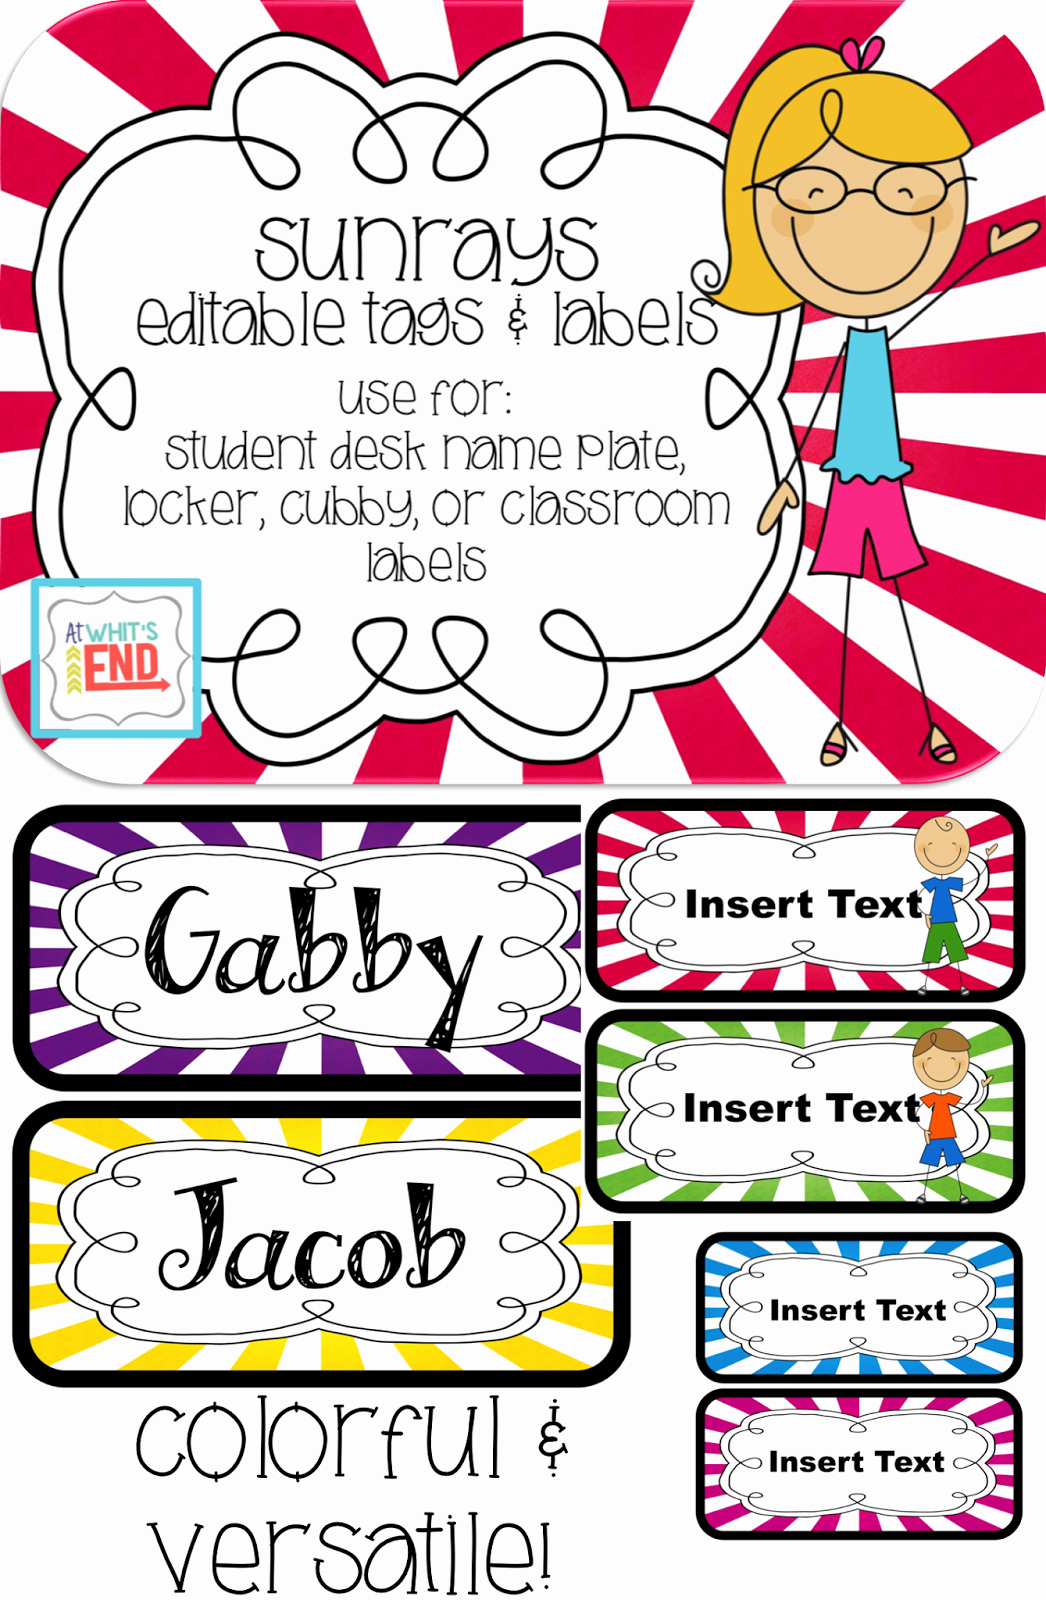 Student Desk Name Plates Templates Beautiful Student Desk Name Tags Hostgarcia